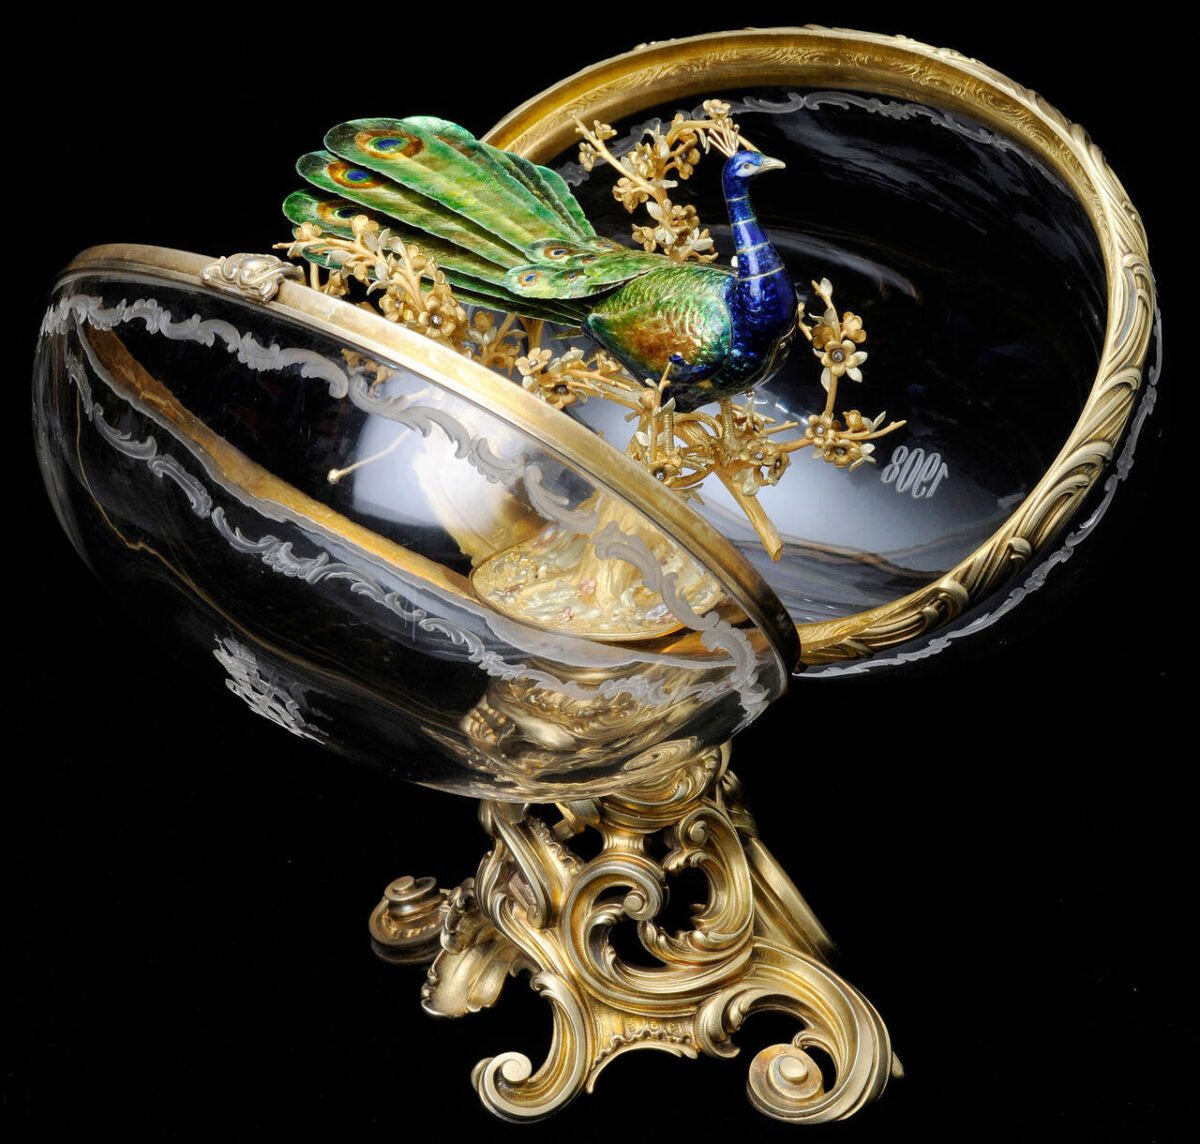 """""""The Peacock Egg"""", the crystal egg concealing inside it a mechanical enameled gold peacock (source: V&A Museum)."""